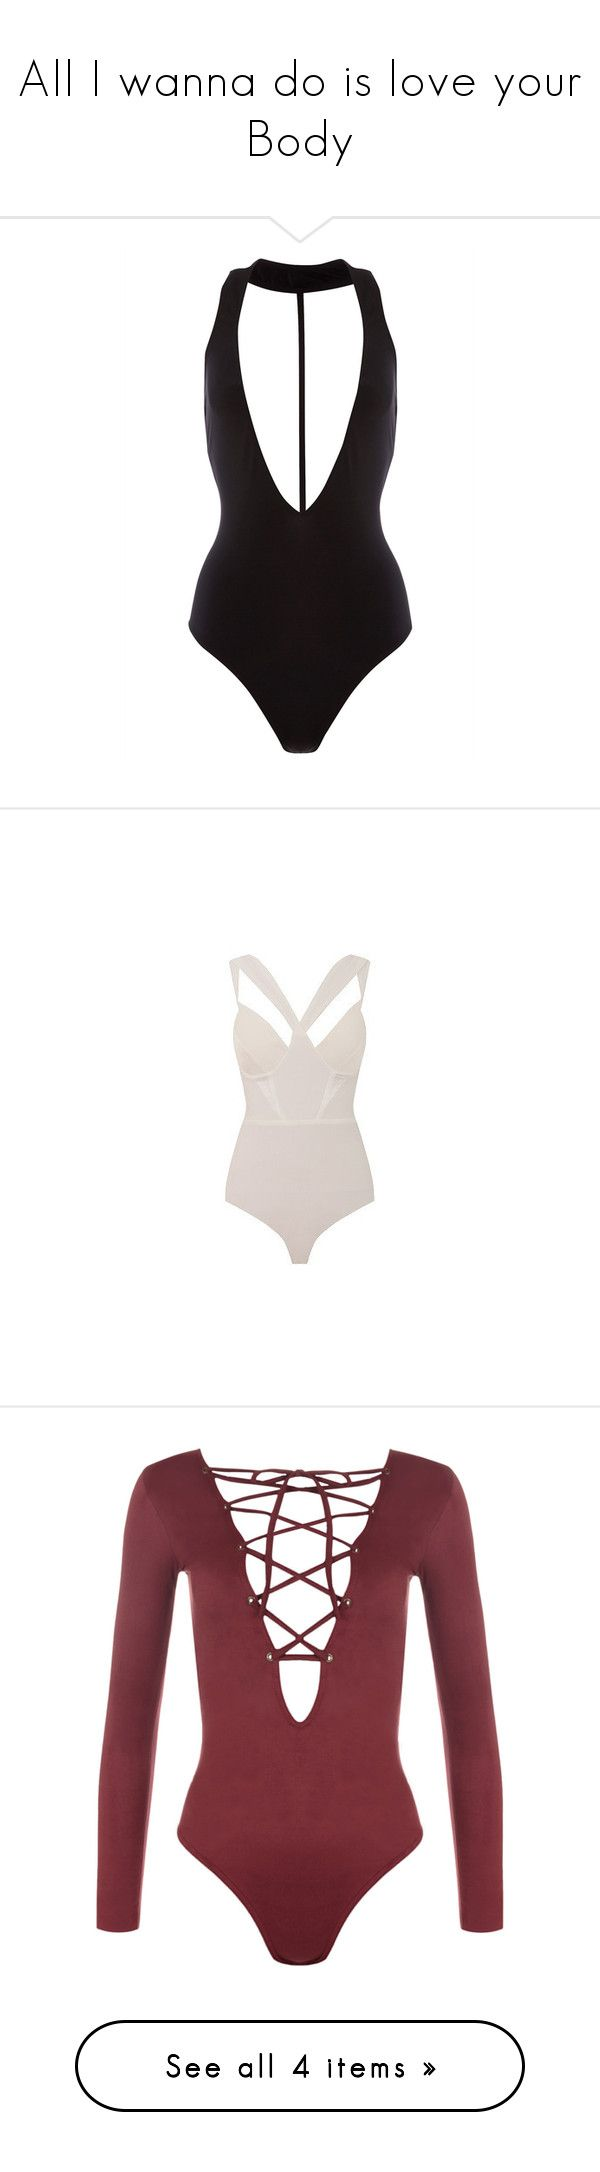 """All I wanna do is love your Body"" by lv-a ❤ liked on Polyvore featuring intimates, shapewear, bodysuits, tops, one piece, bodies, swimsuits, bodysuit, shirts and wine"